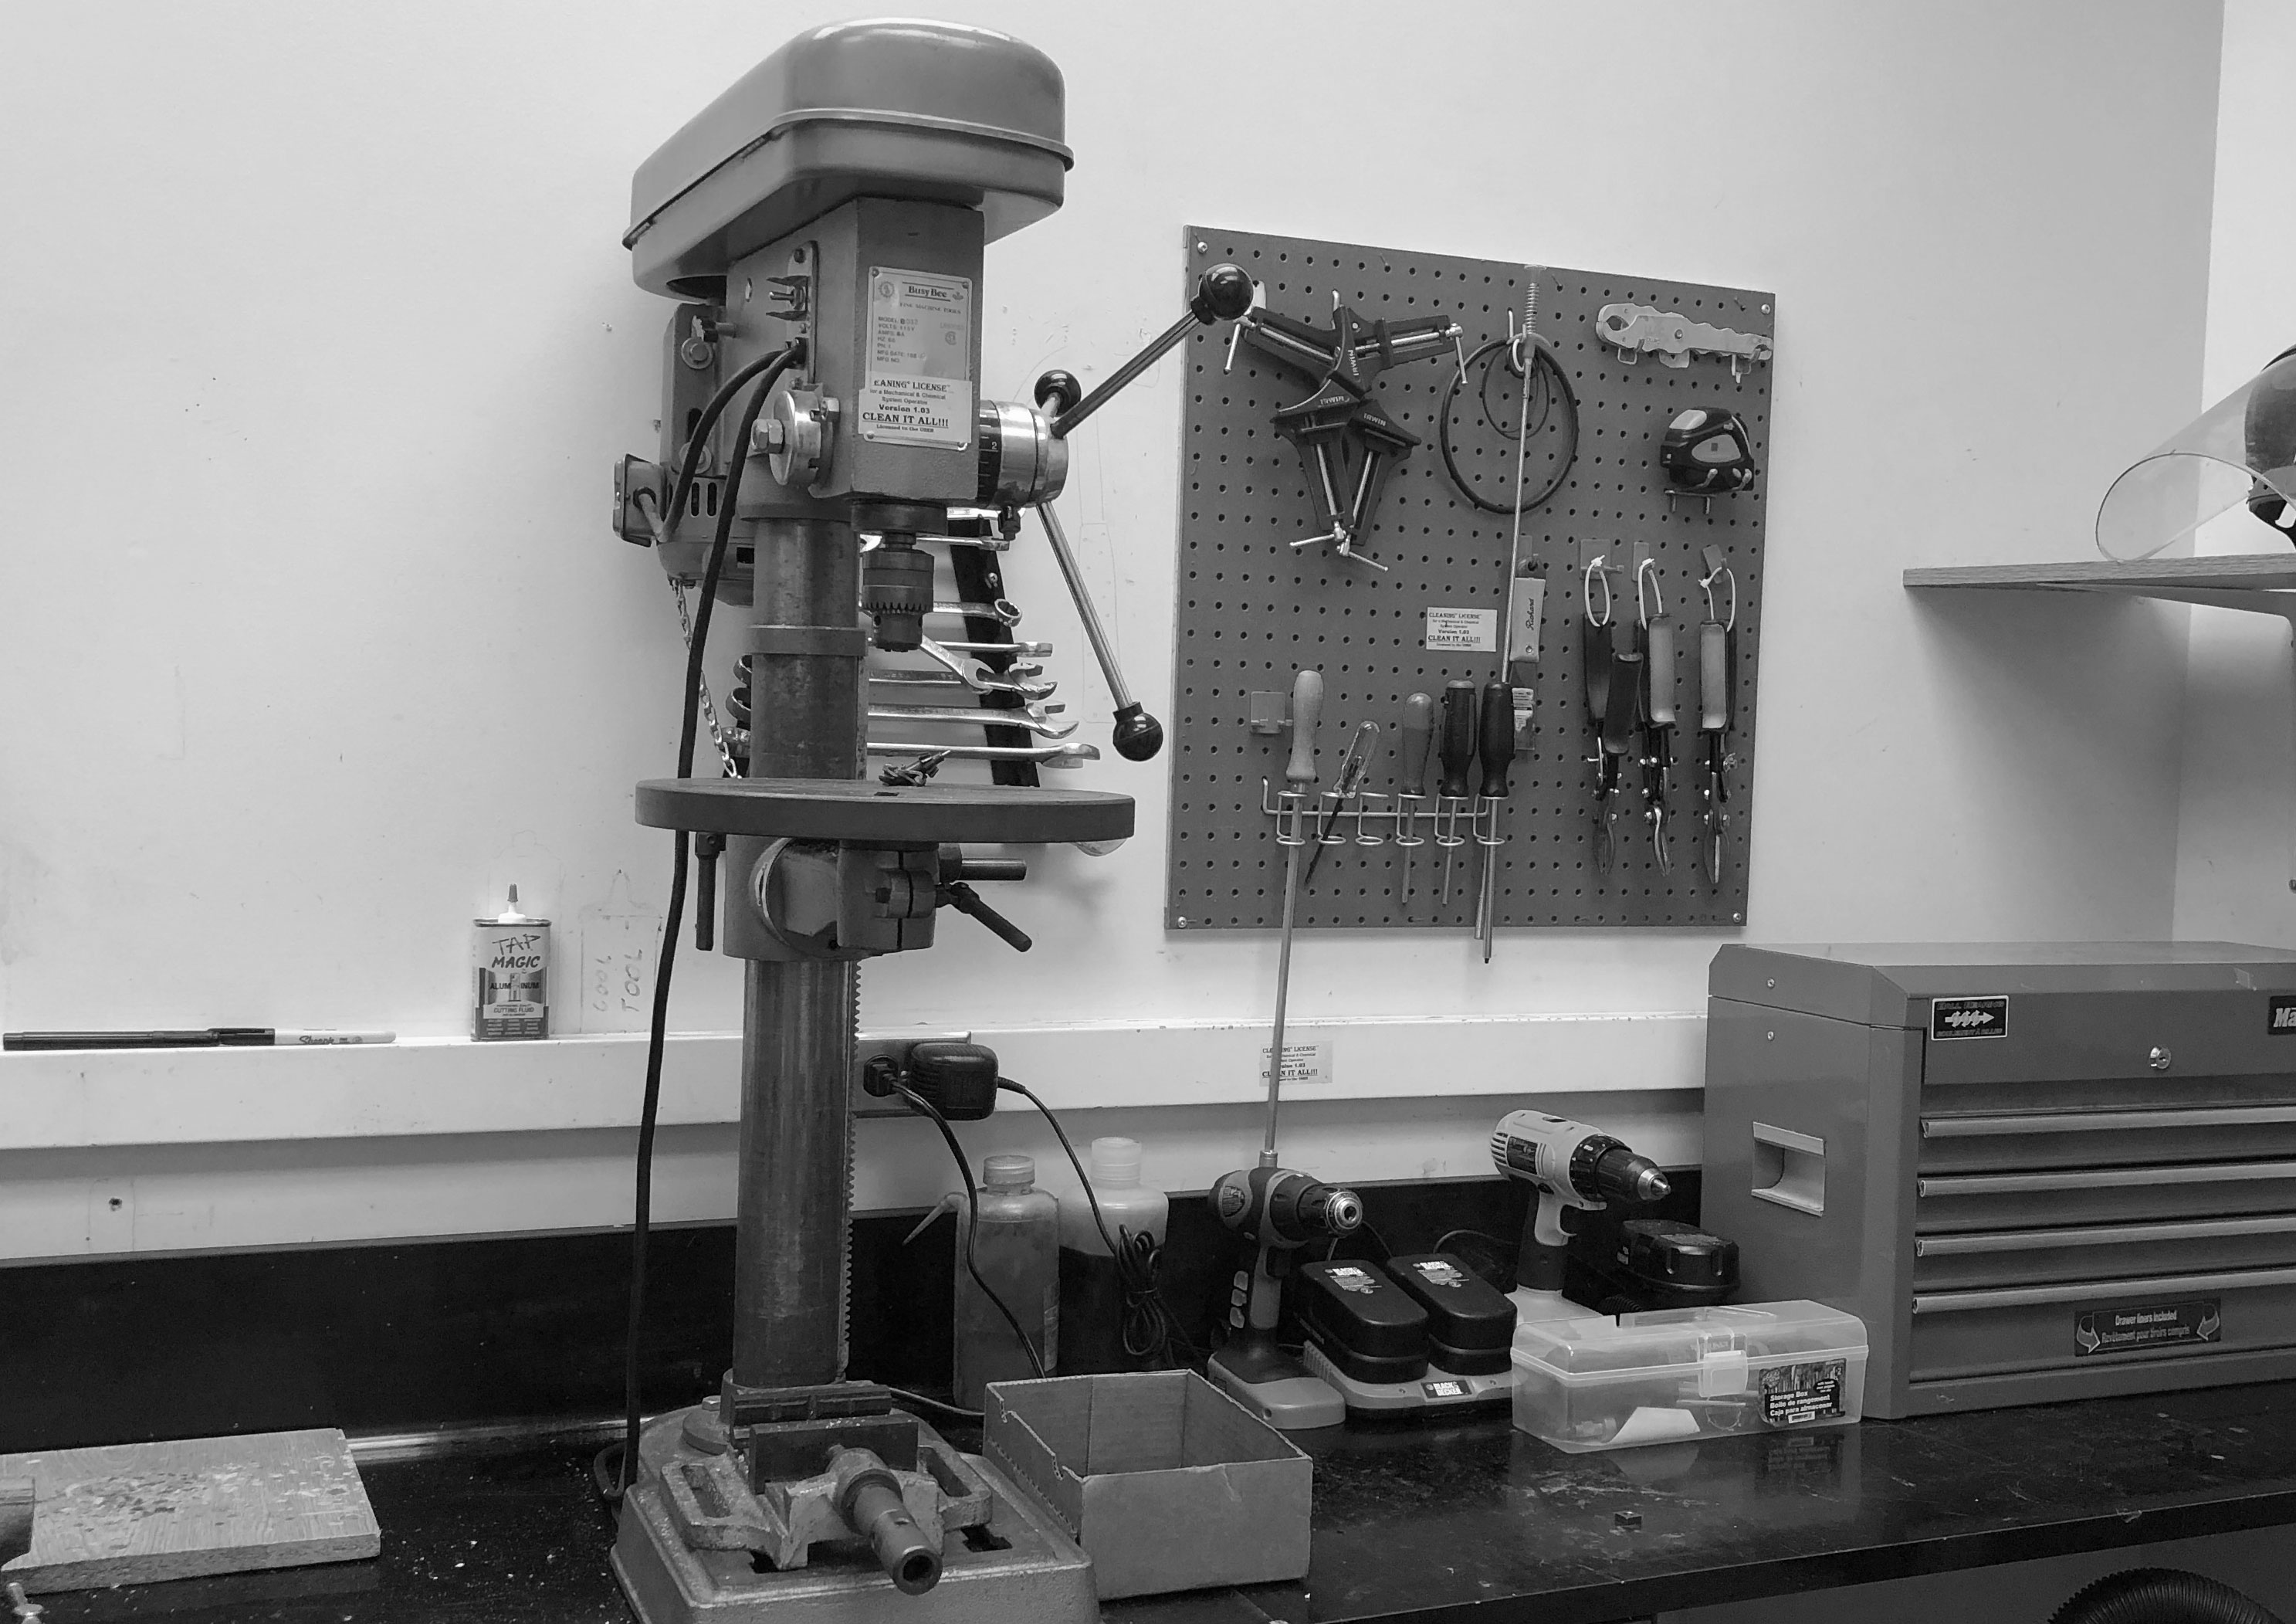 Prototype Table with Drill Press